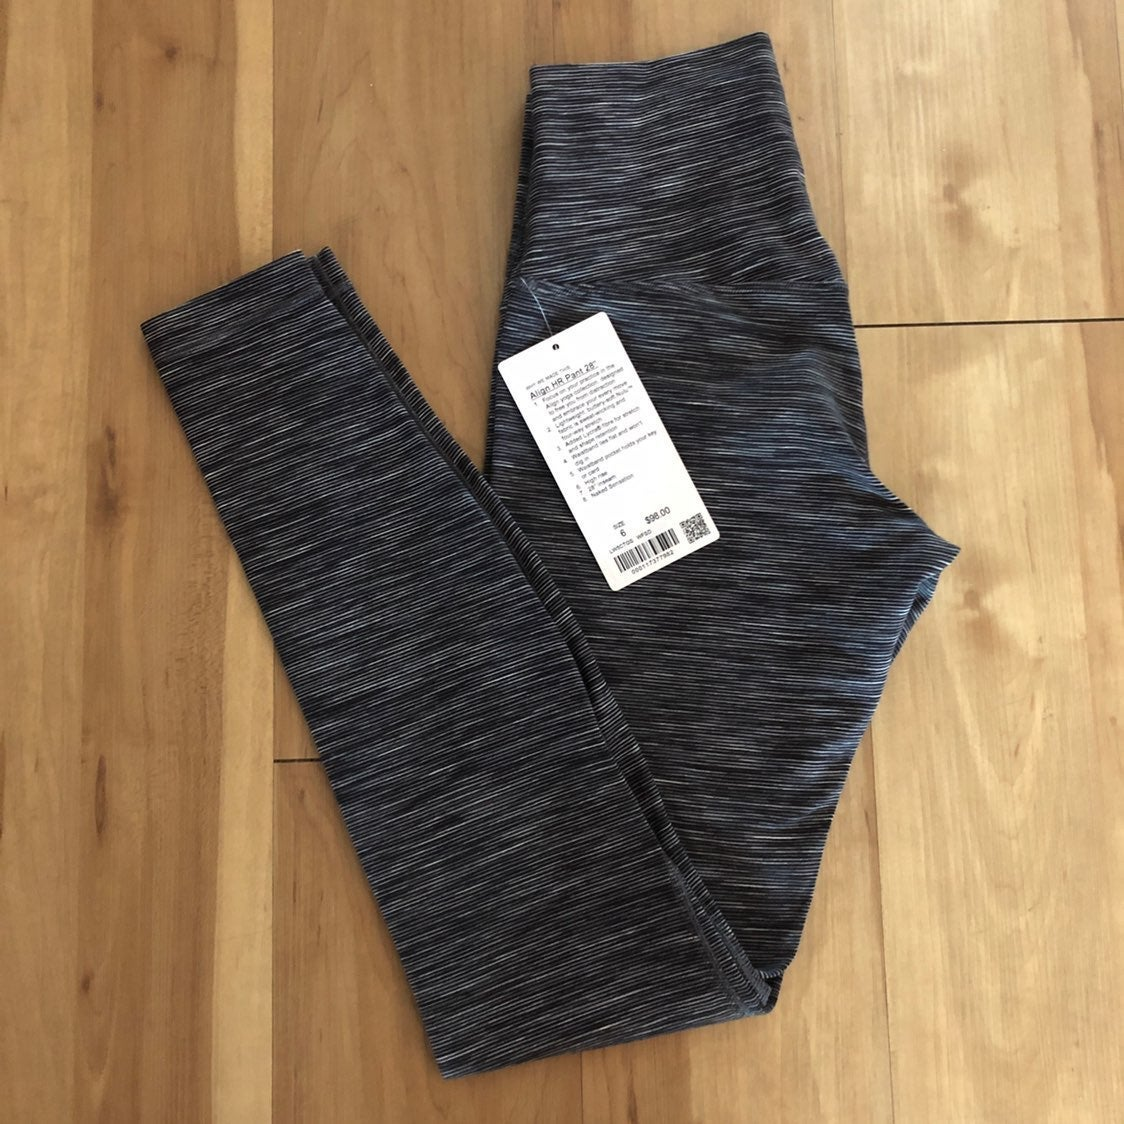 NWT Lululemon Align 28 Wee Are From Spac